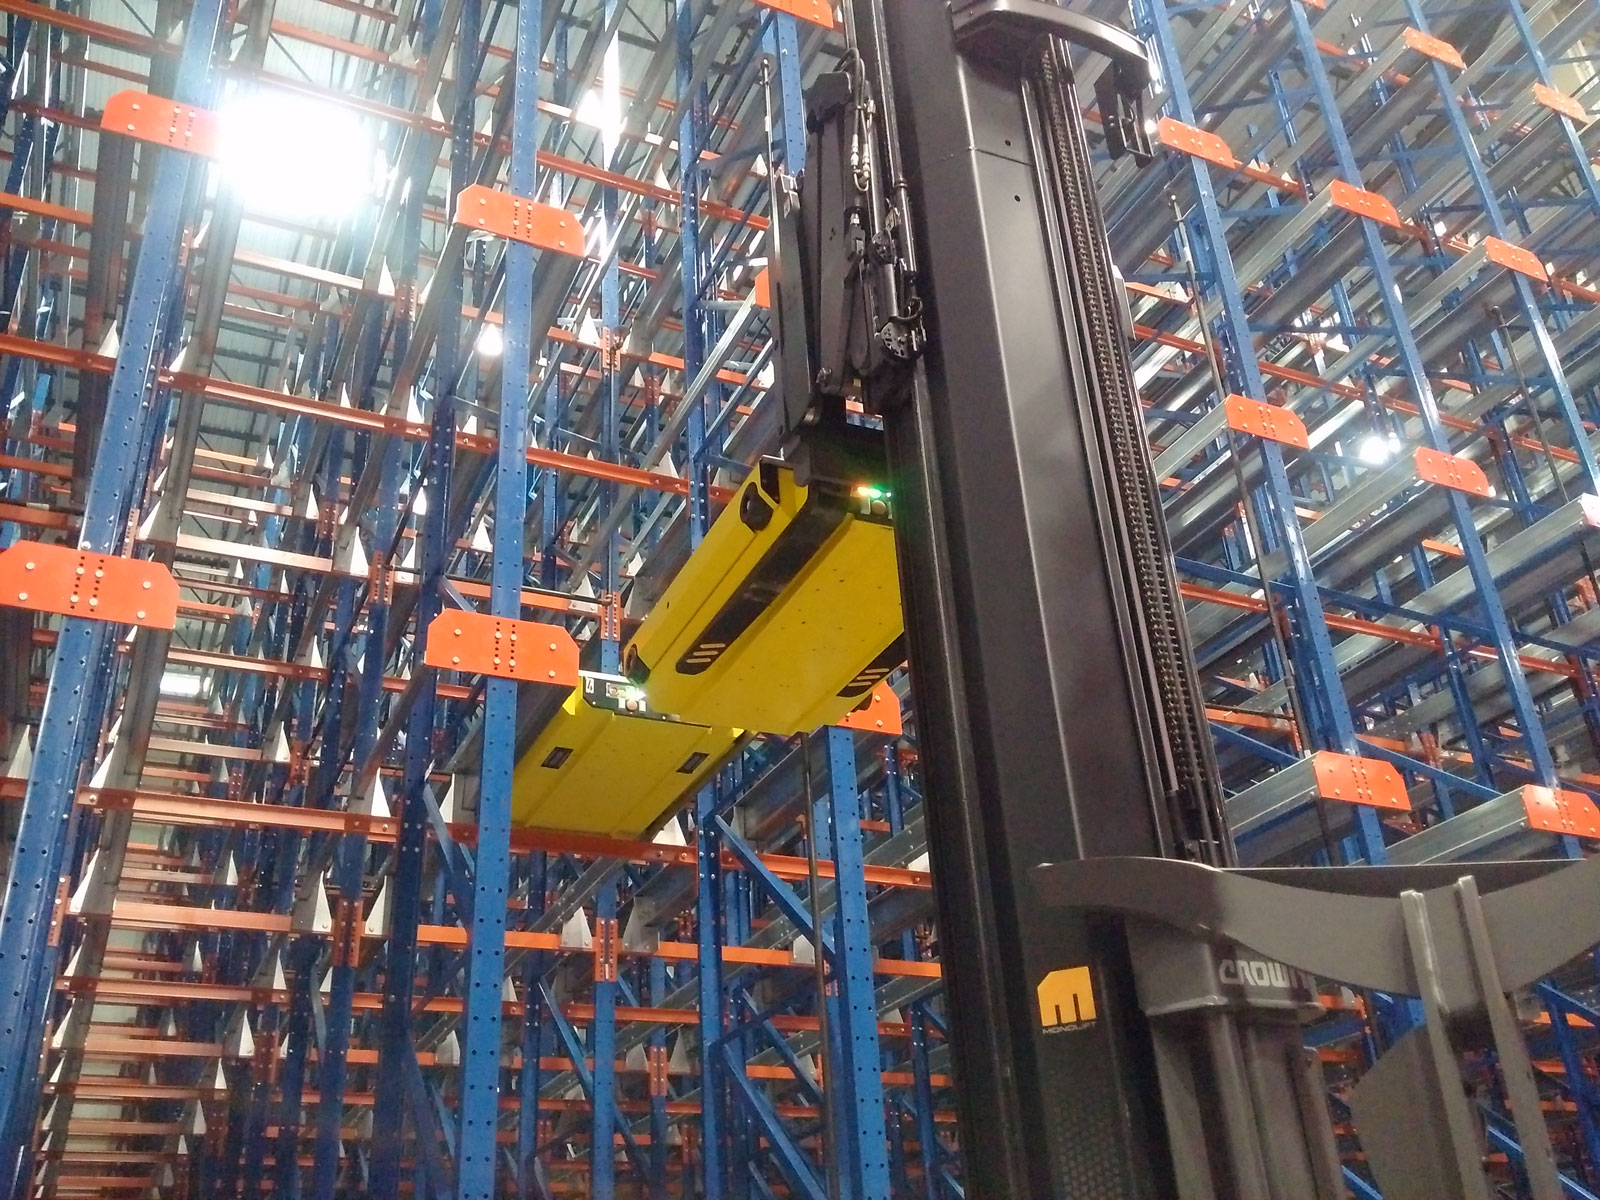 Frazier's Pallet Mole® shuttle is lifted into place by a fork truck.